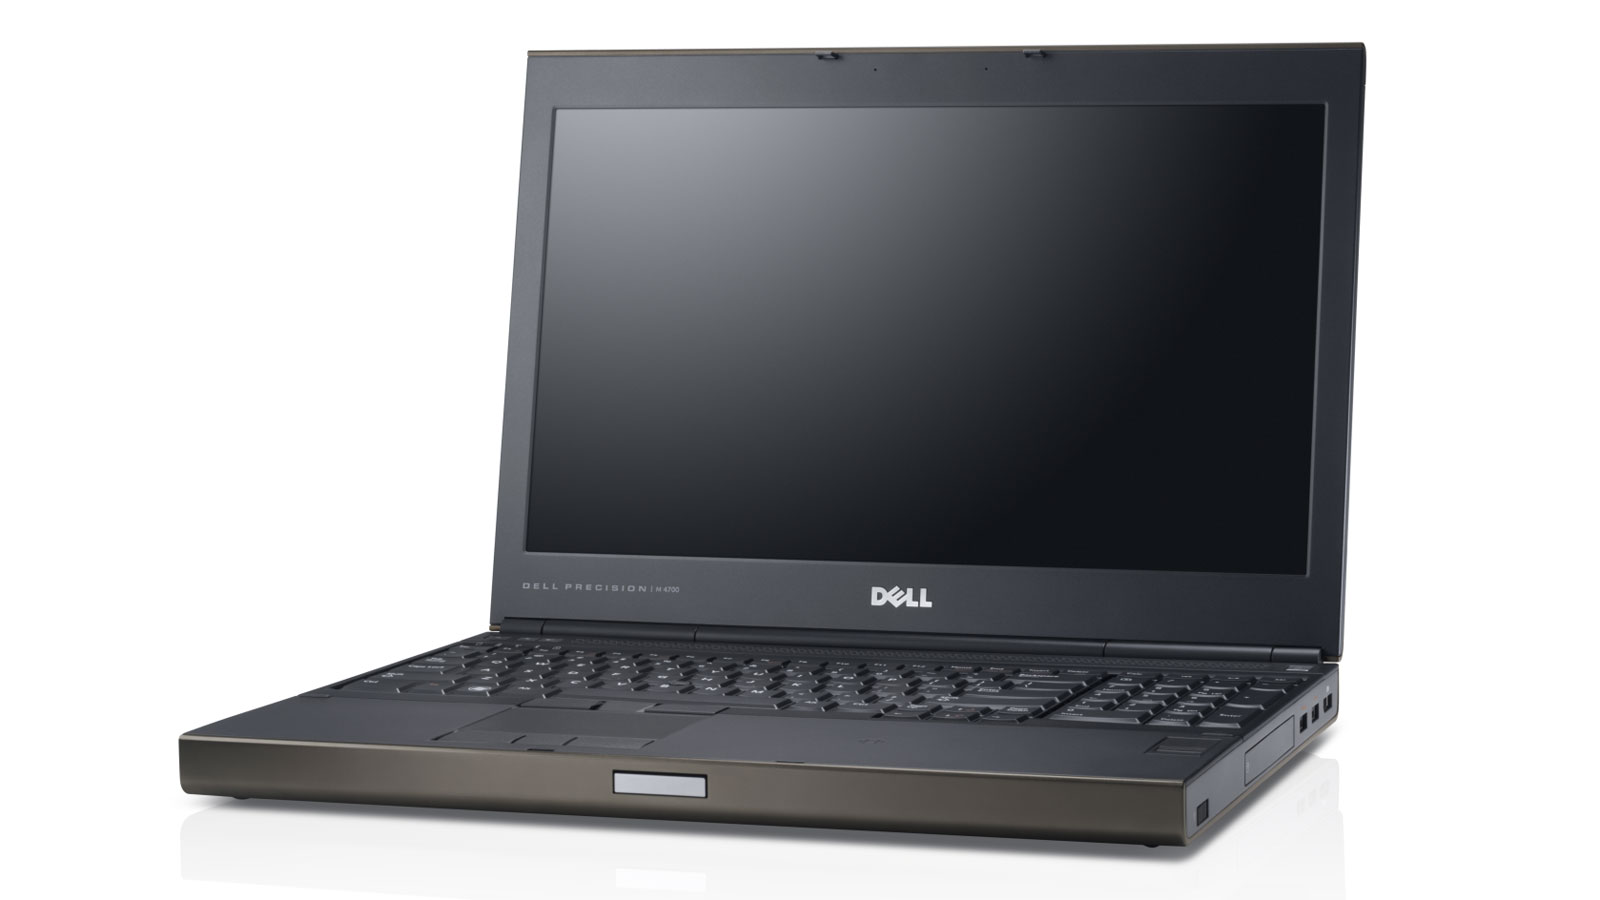 Dell for Business. , likes · 1, talking about this. You've come to the right place for technology news, info, tips and more to help move your.